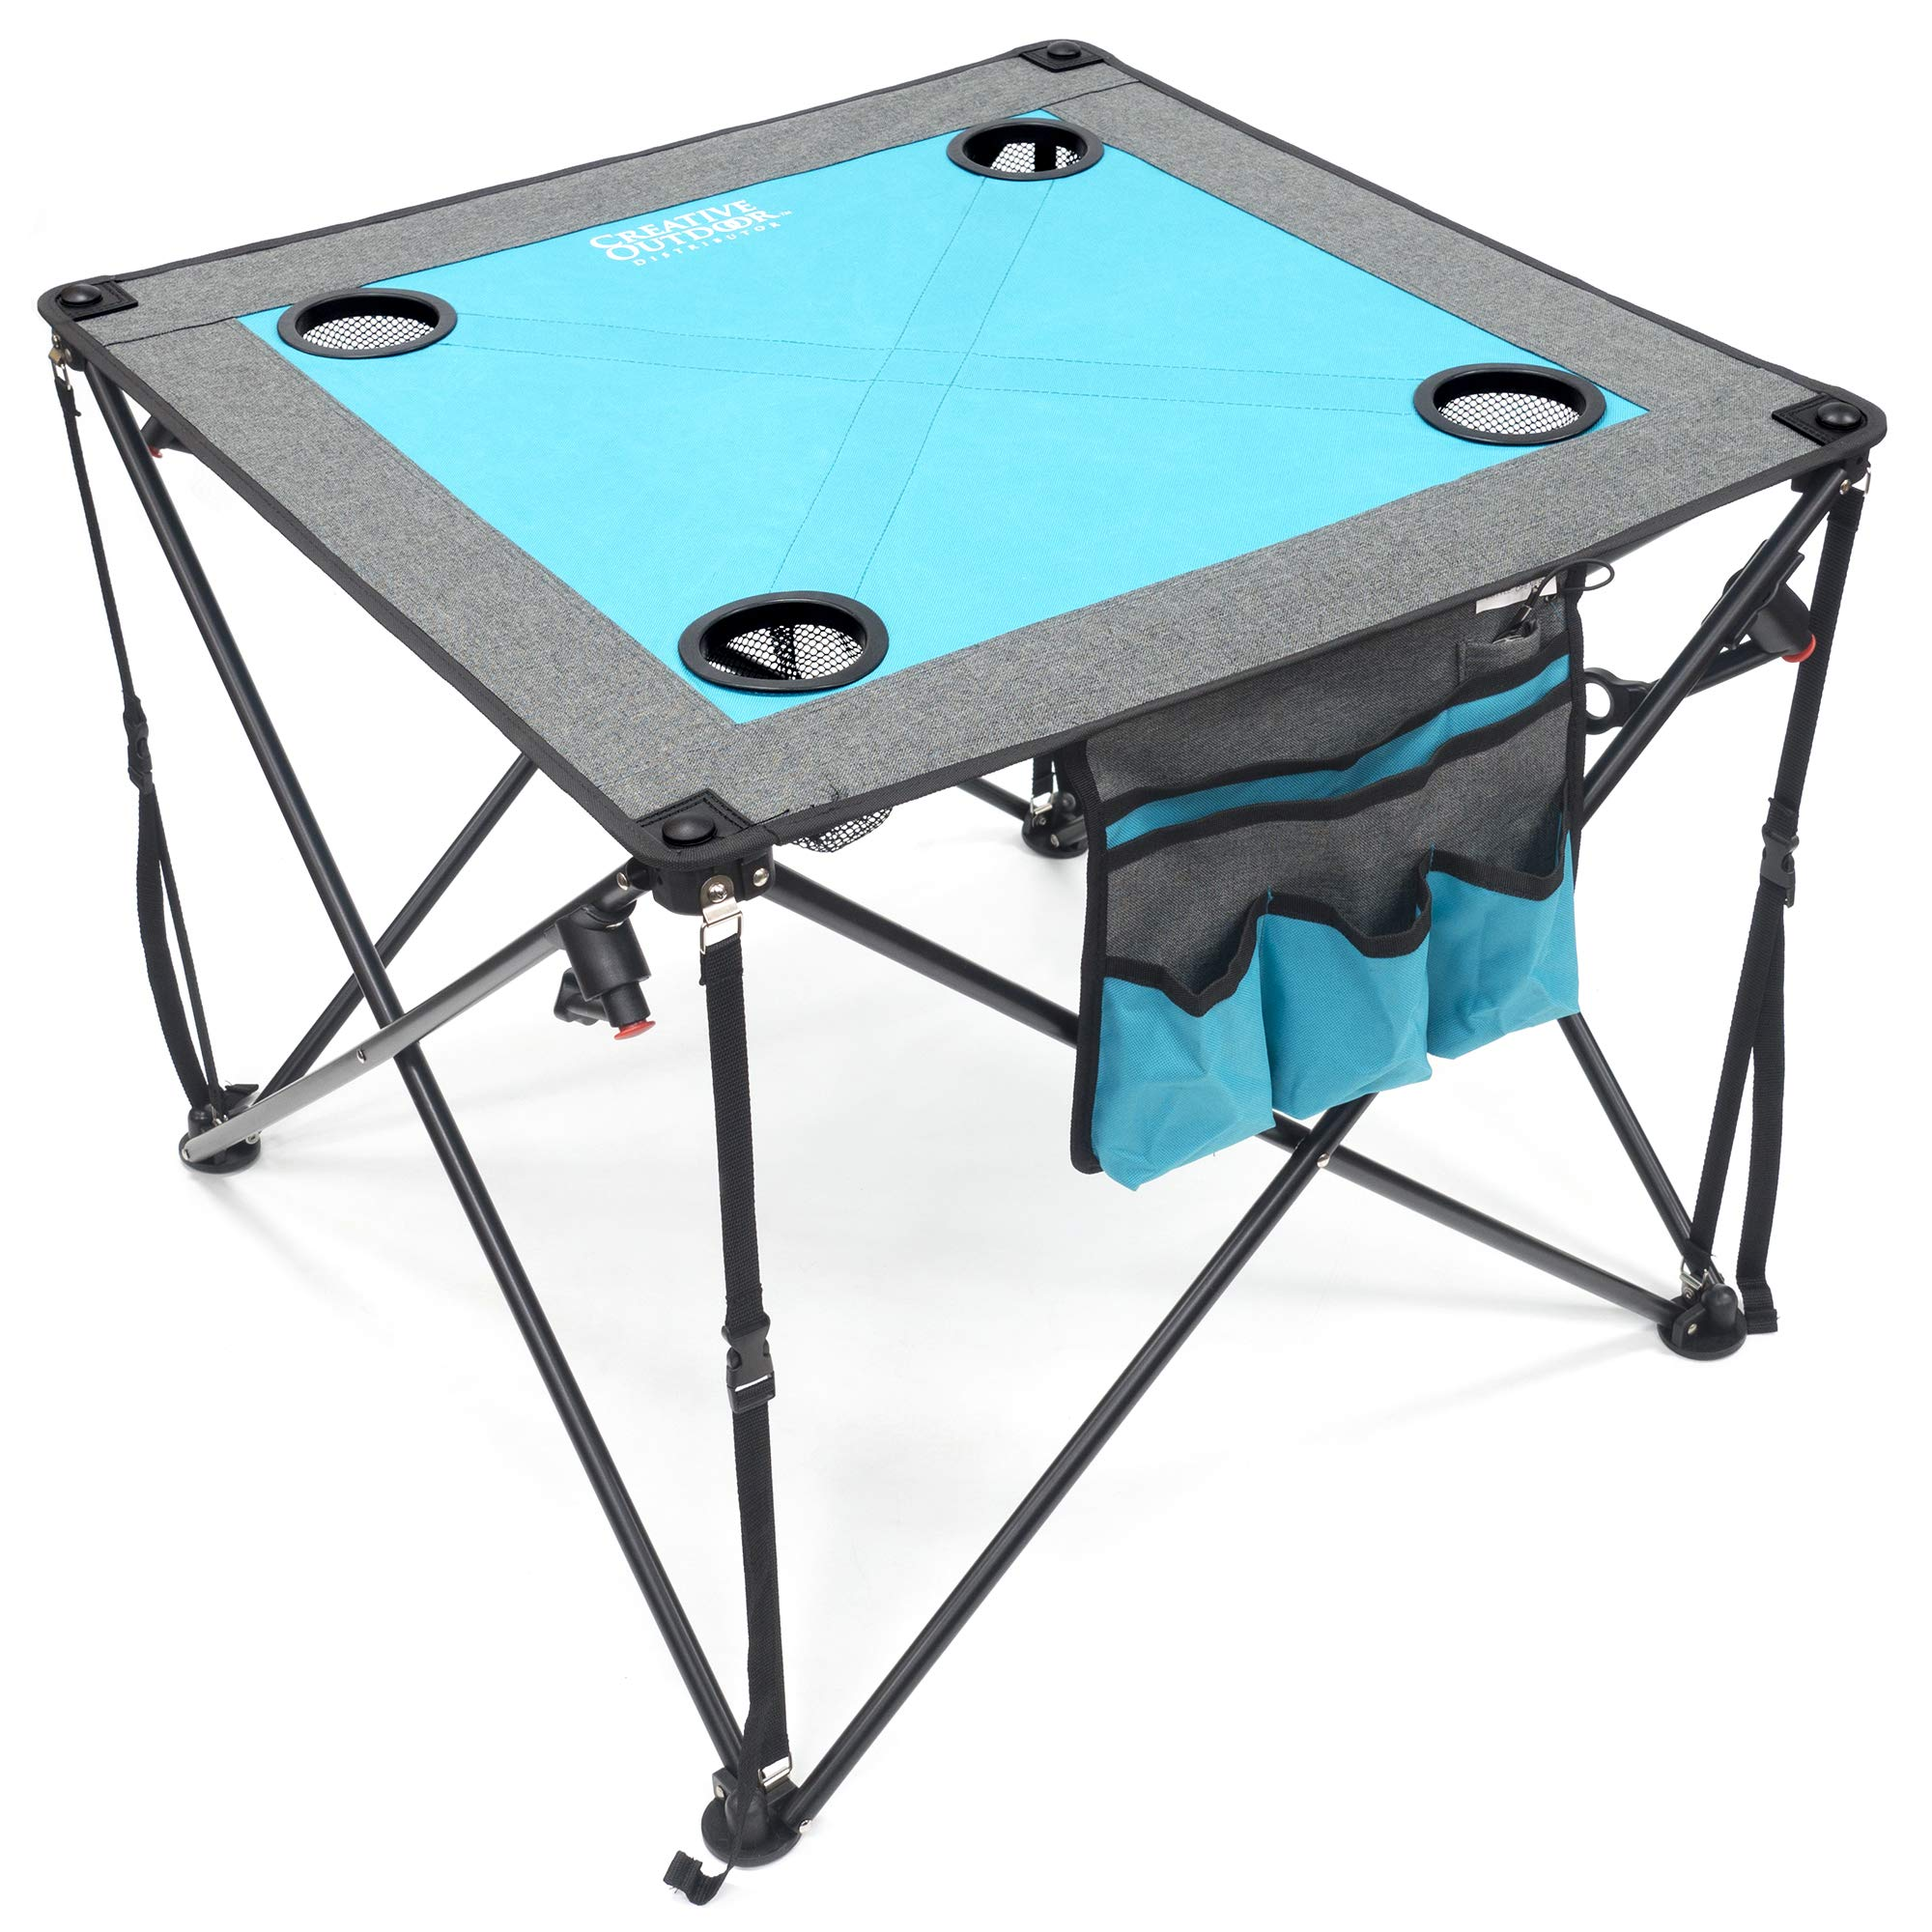 Creative Outdoor Folding Wine Table, Teal/Gray by Creative Outdoor Distributor